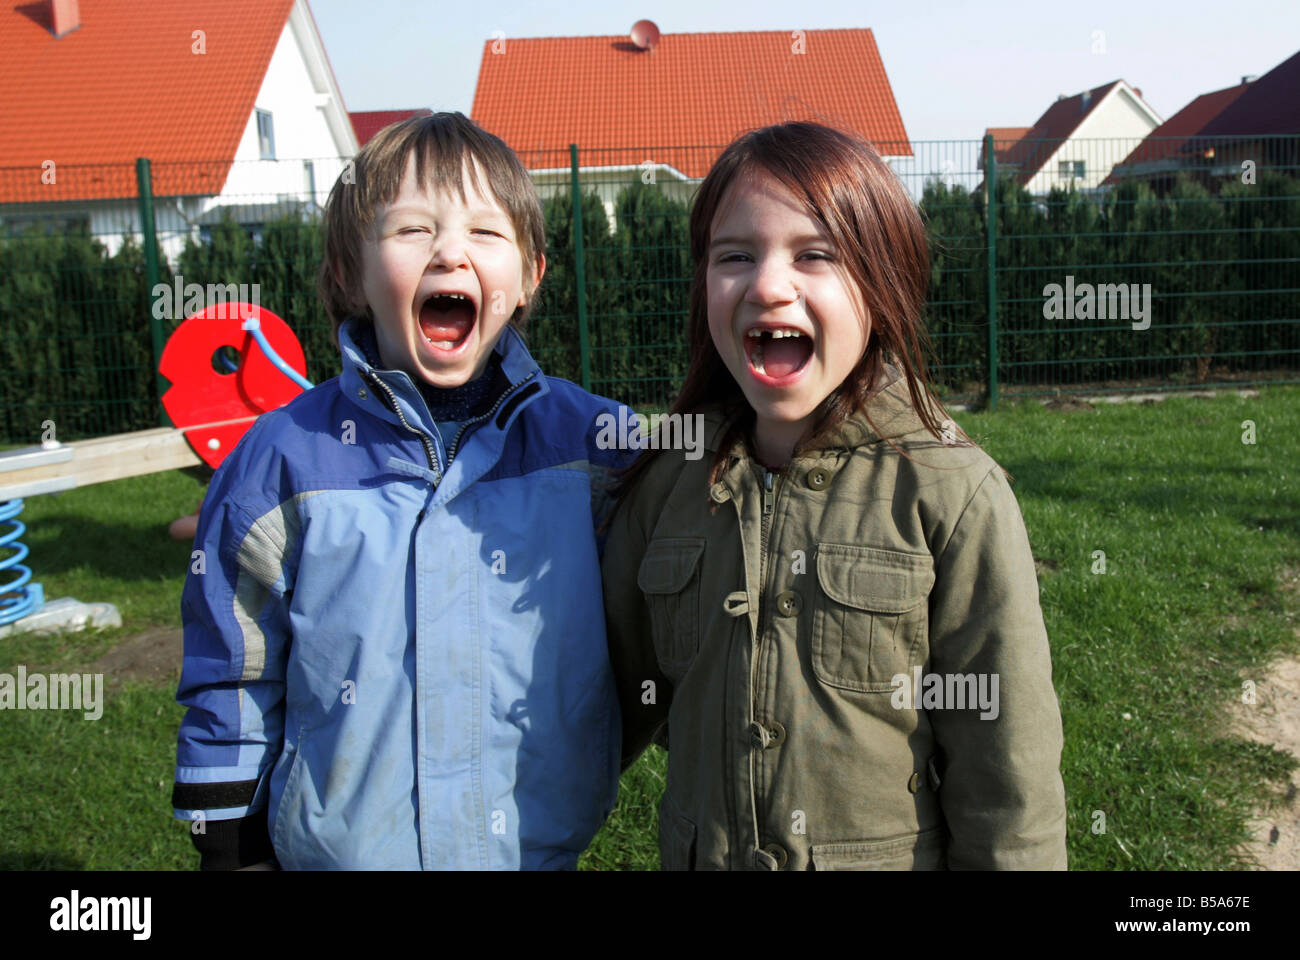 A boy and a girl screaming loudly - Stock Image